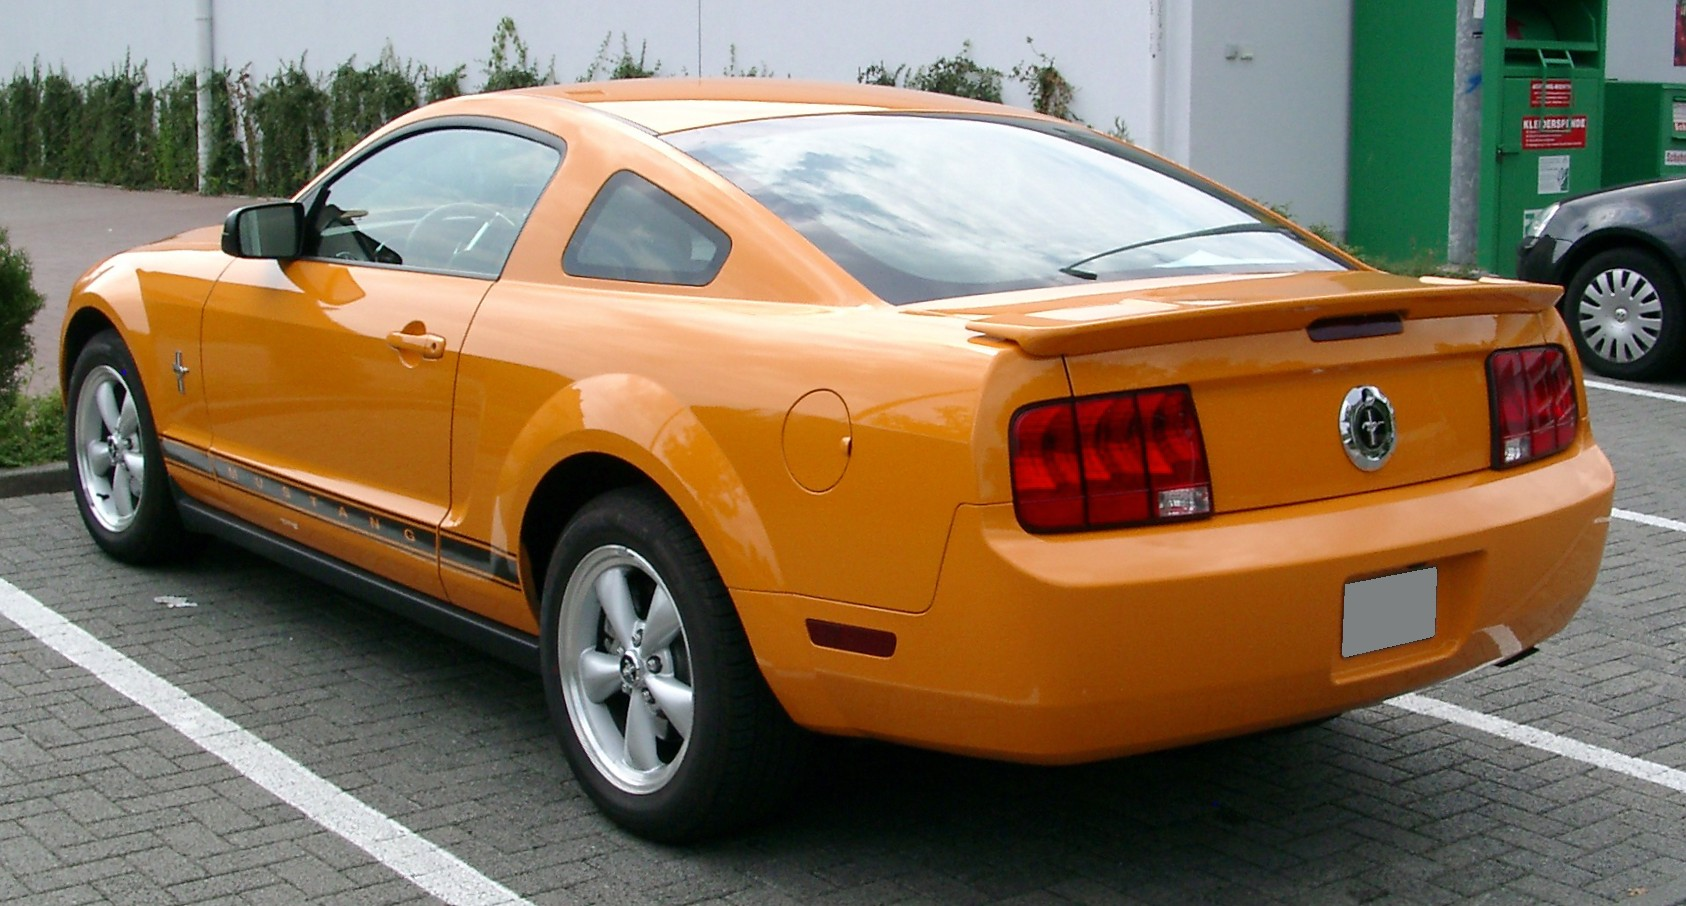 file ford mustang rear wikipedia. Black Bedroom Furniture Sets. Home Design Ideas